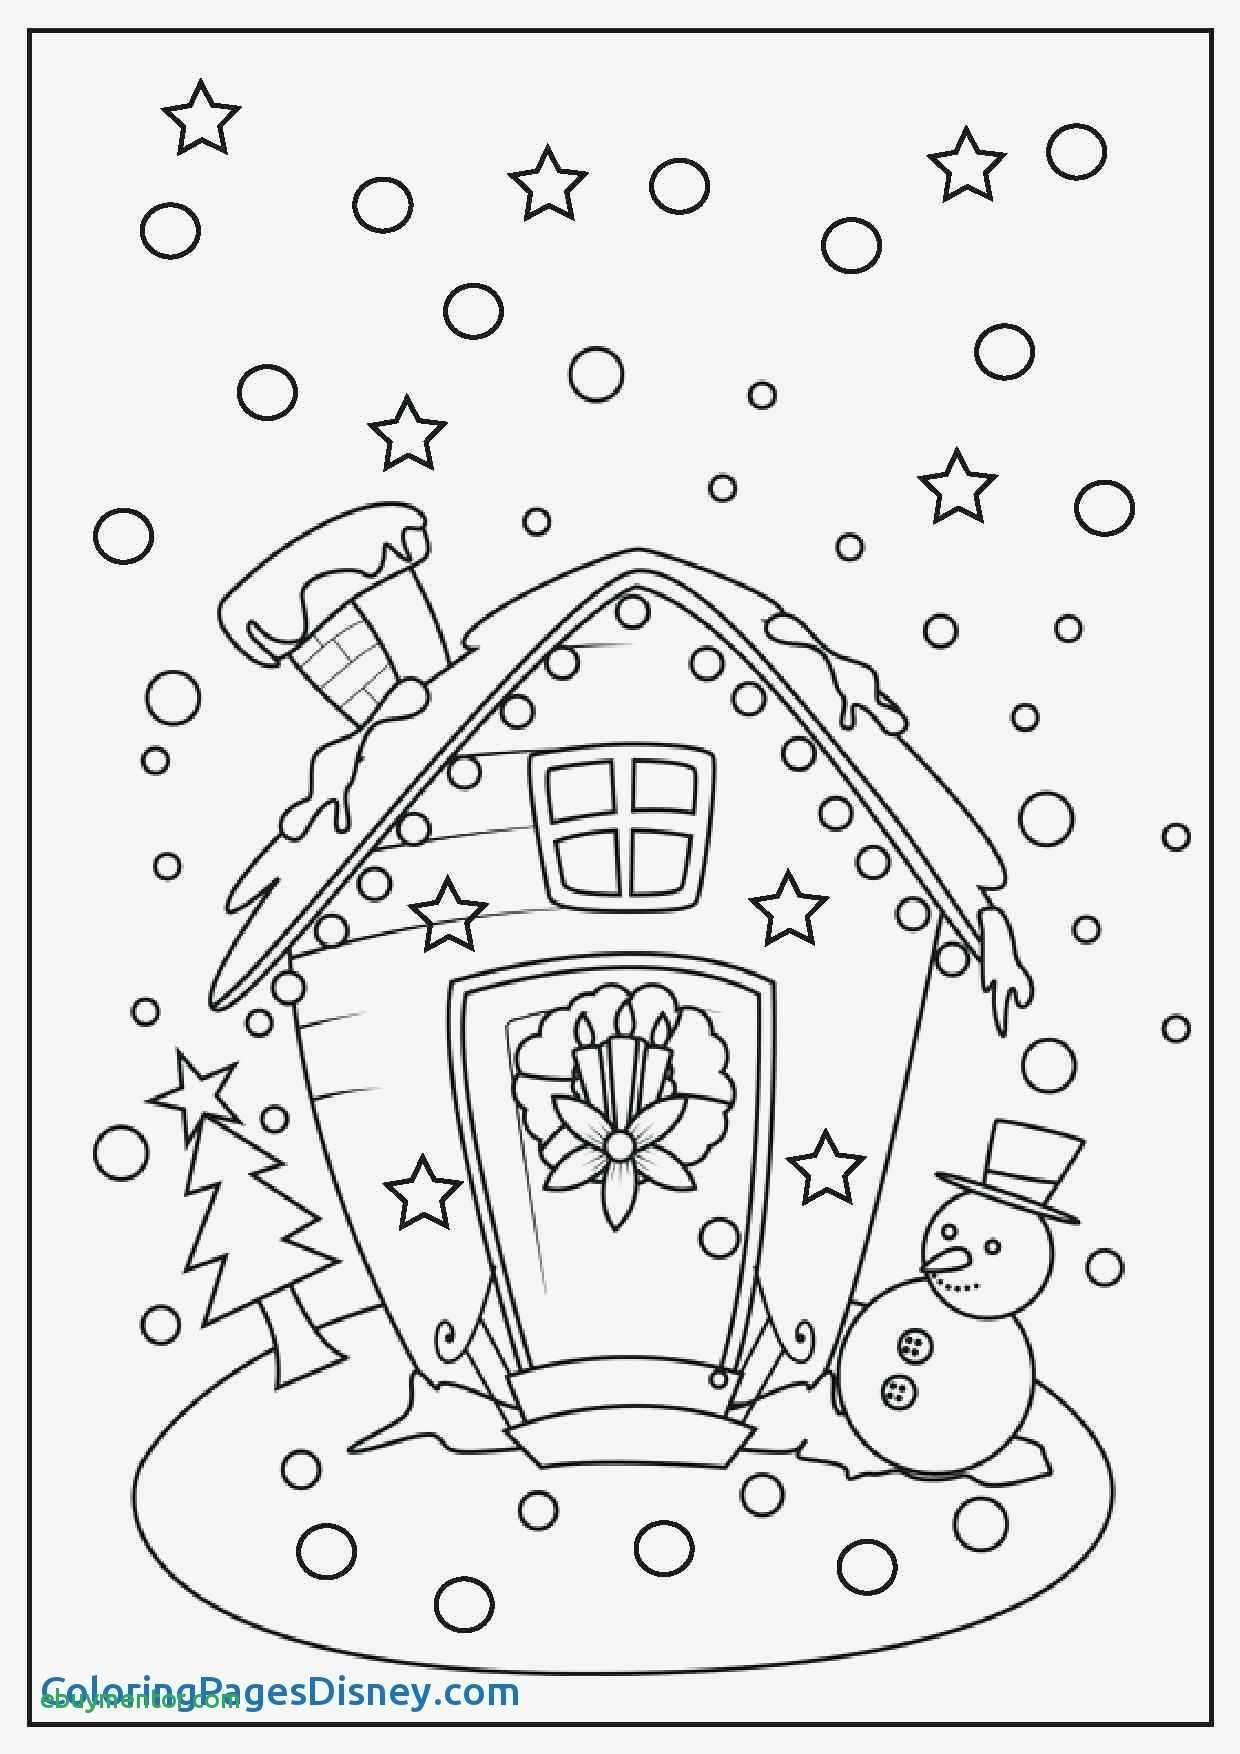 30 oriental Trading Coloring Pages Download - Coloring Sheets